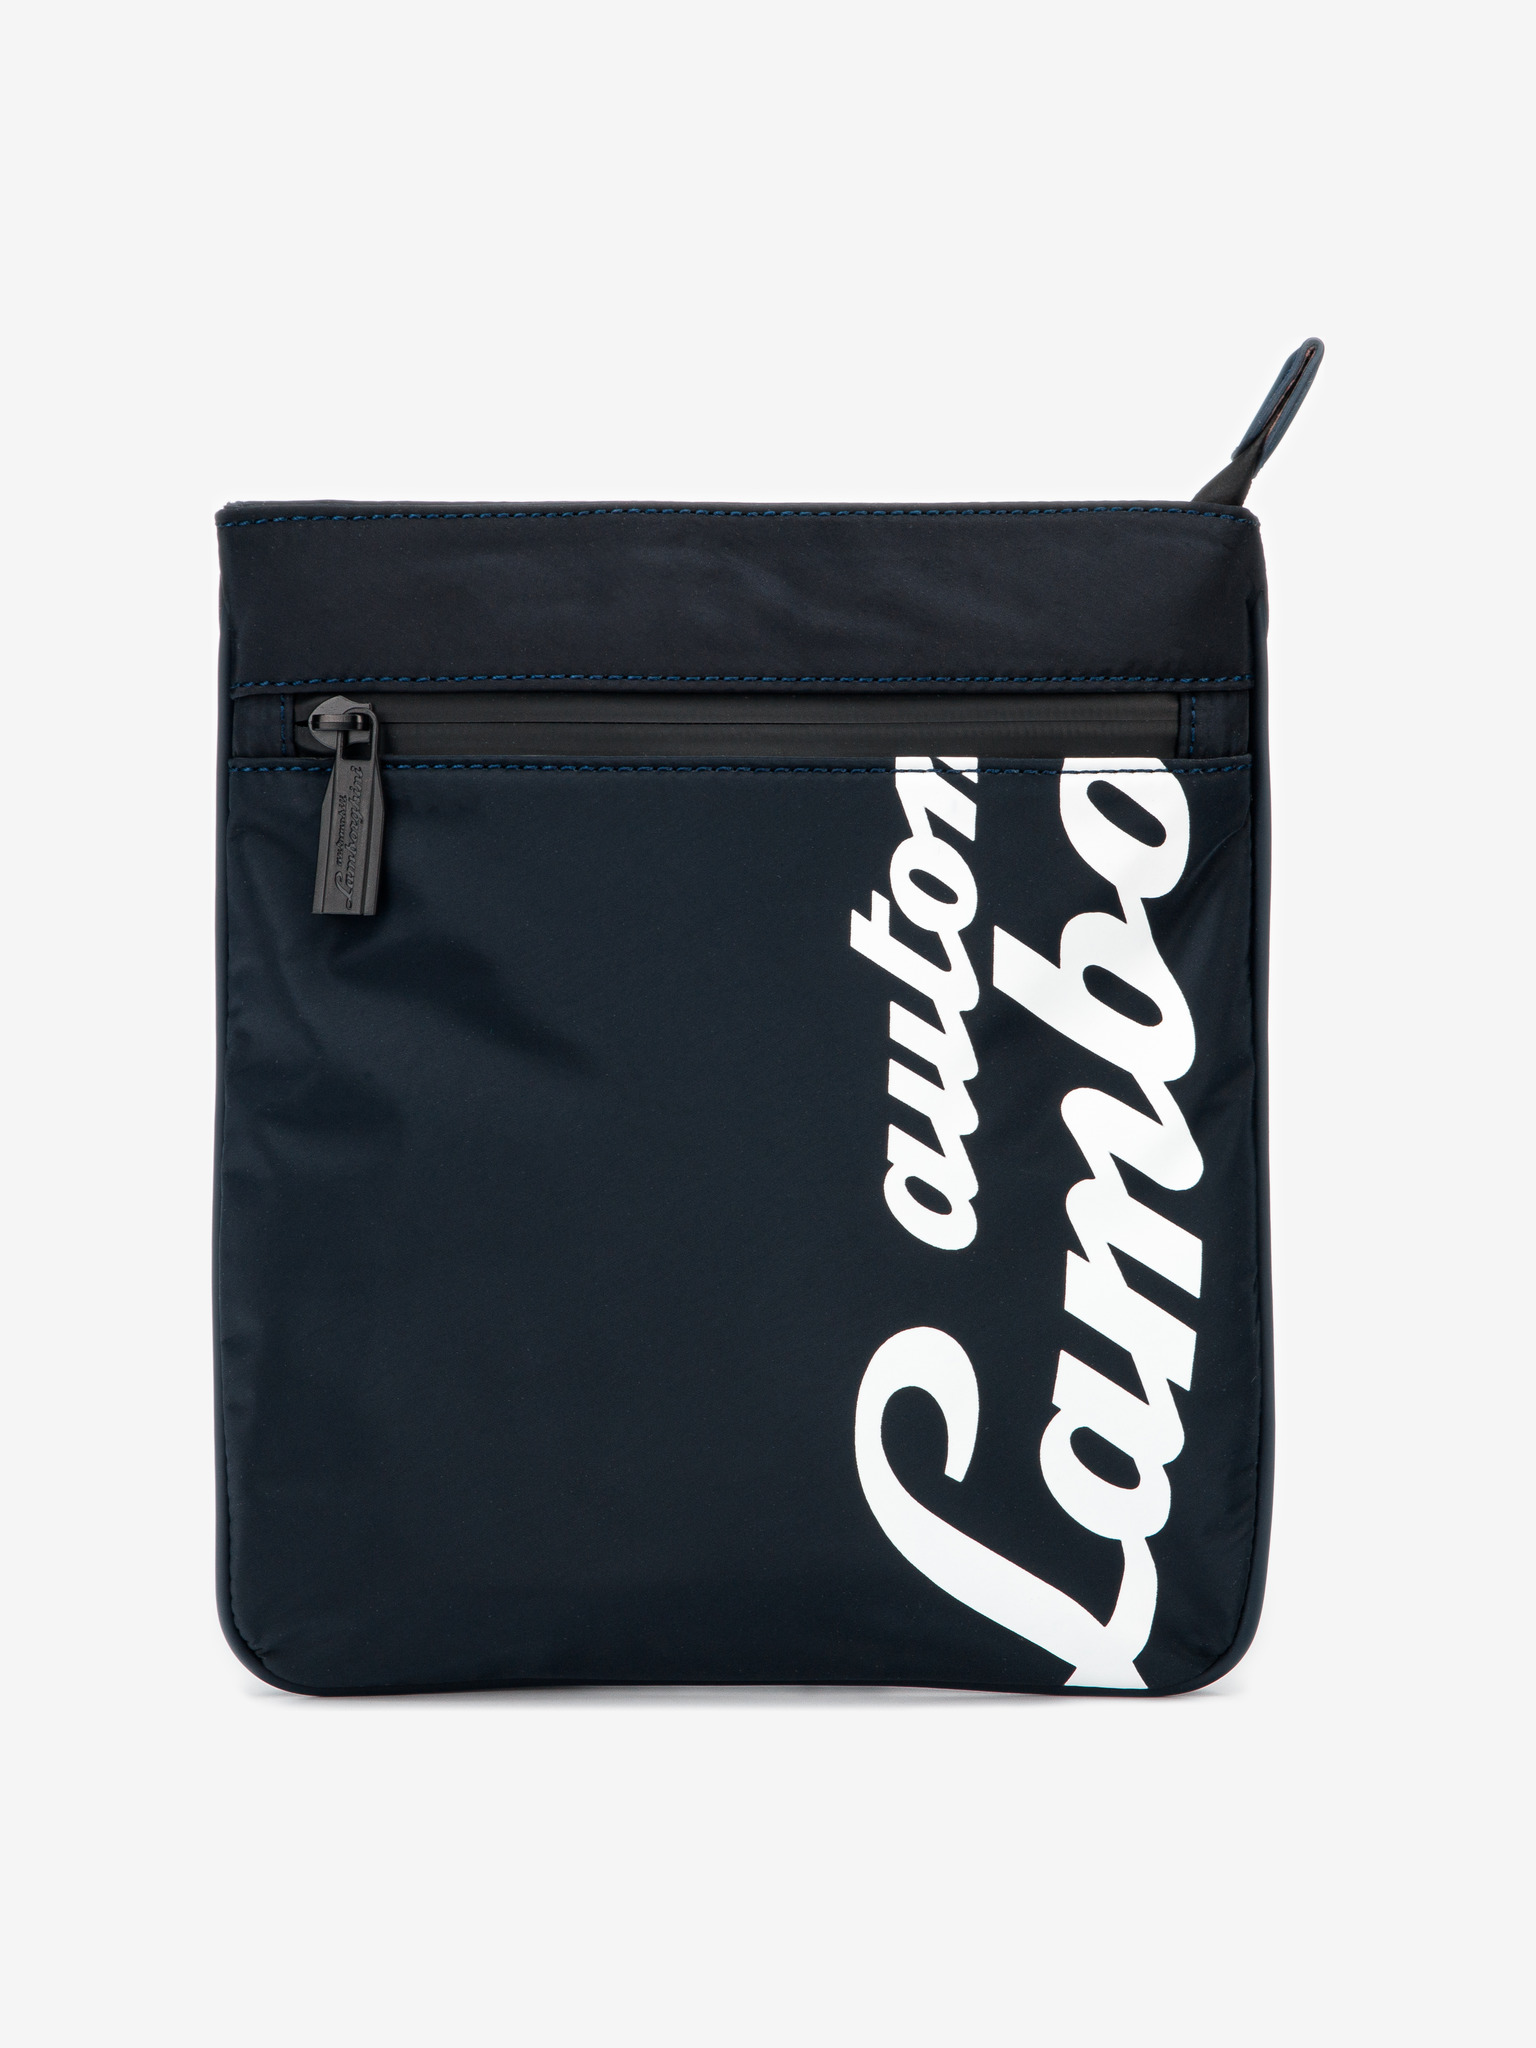 Cross body bag Lamborghini